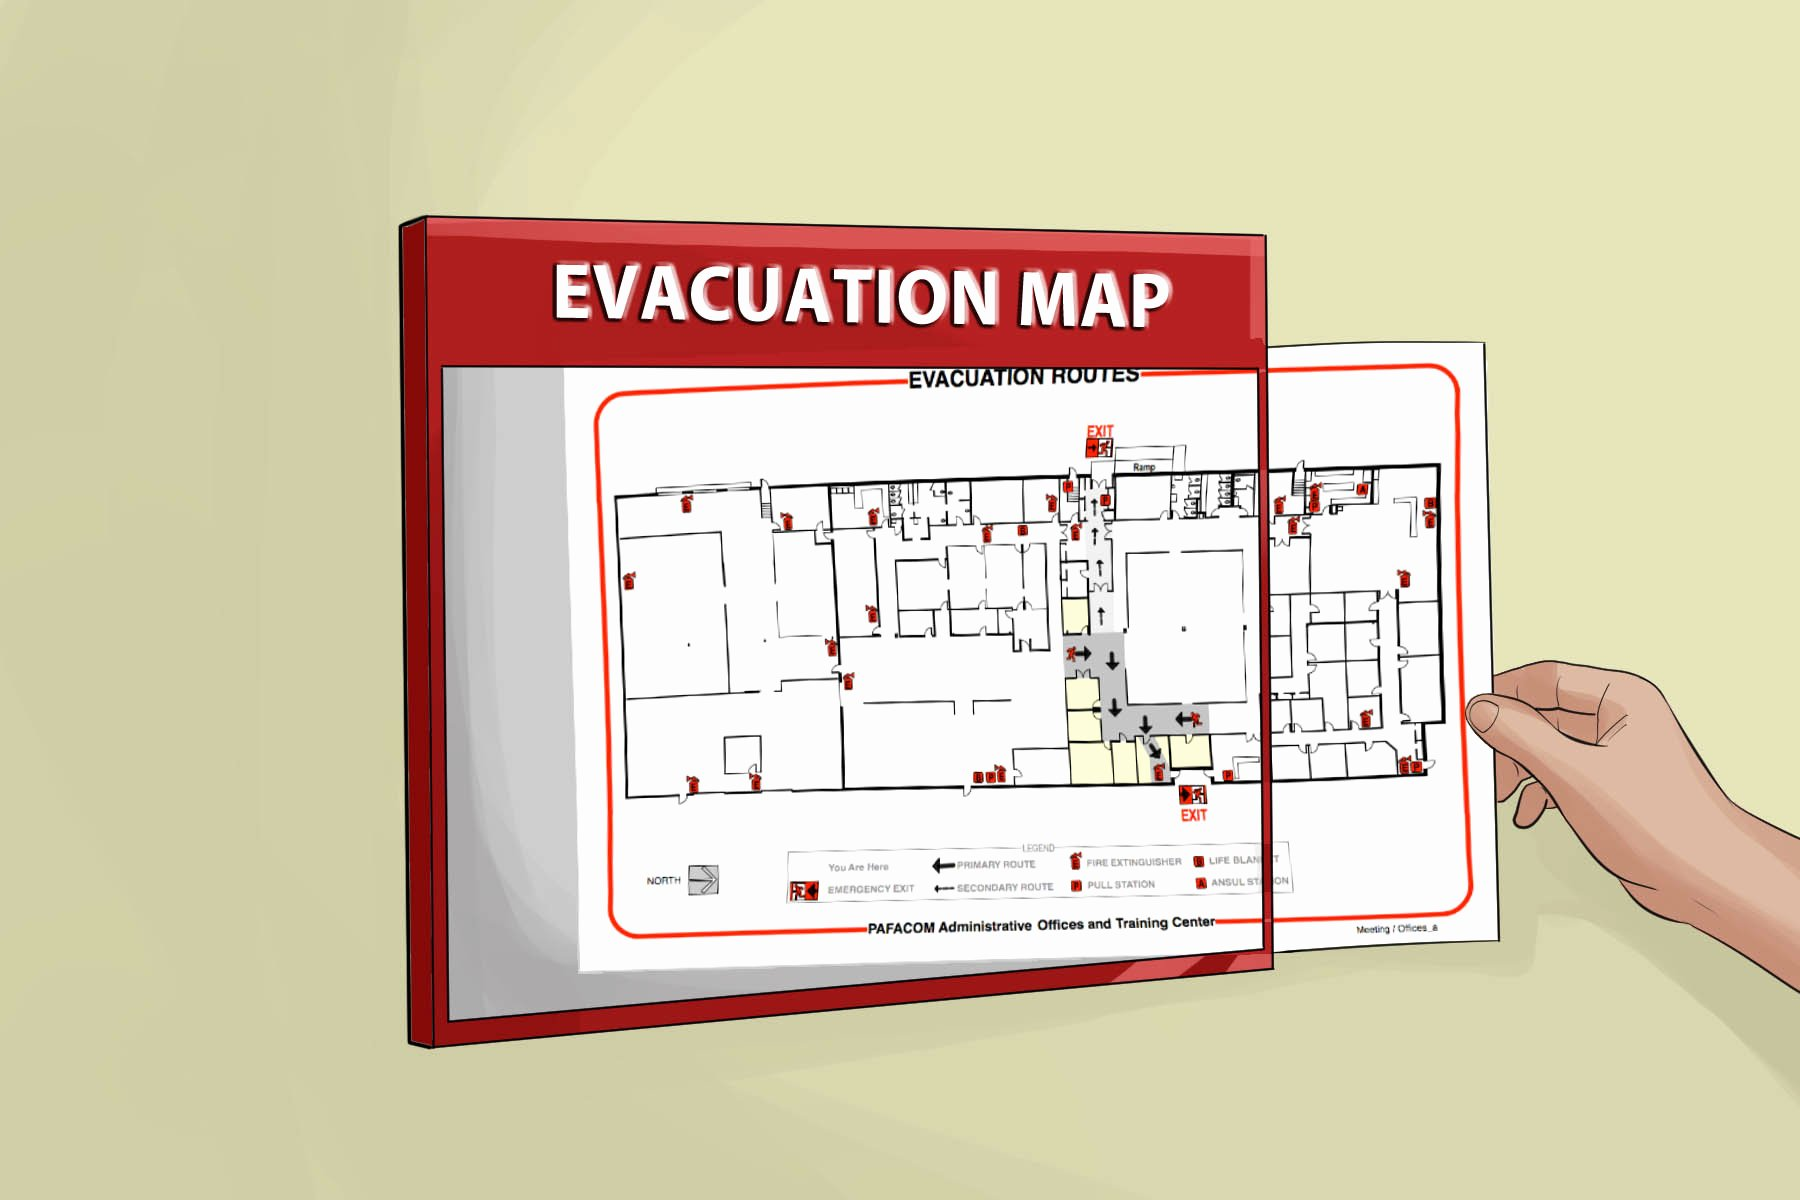 Emergency Evacuation Map Template Best Of How to Evacuate A Building In An Emergency 11 Steps